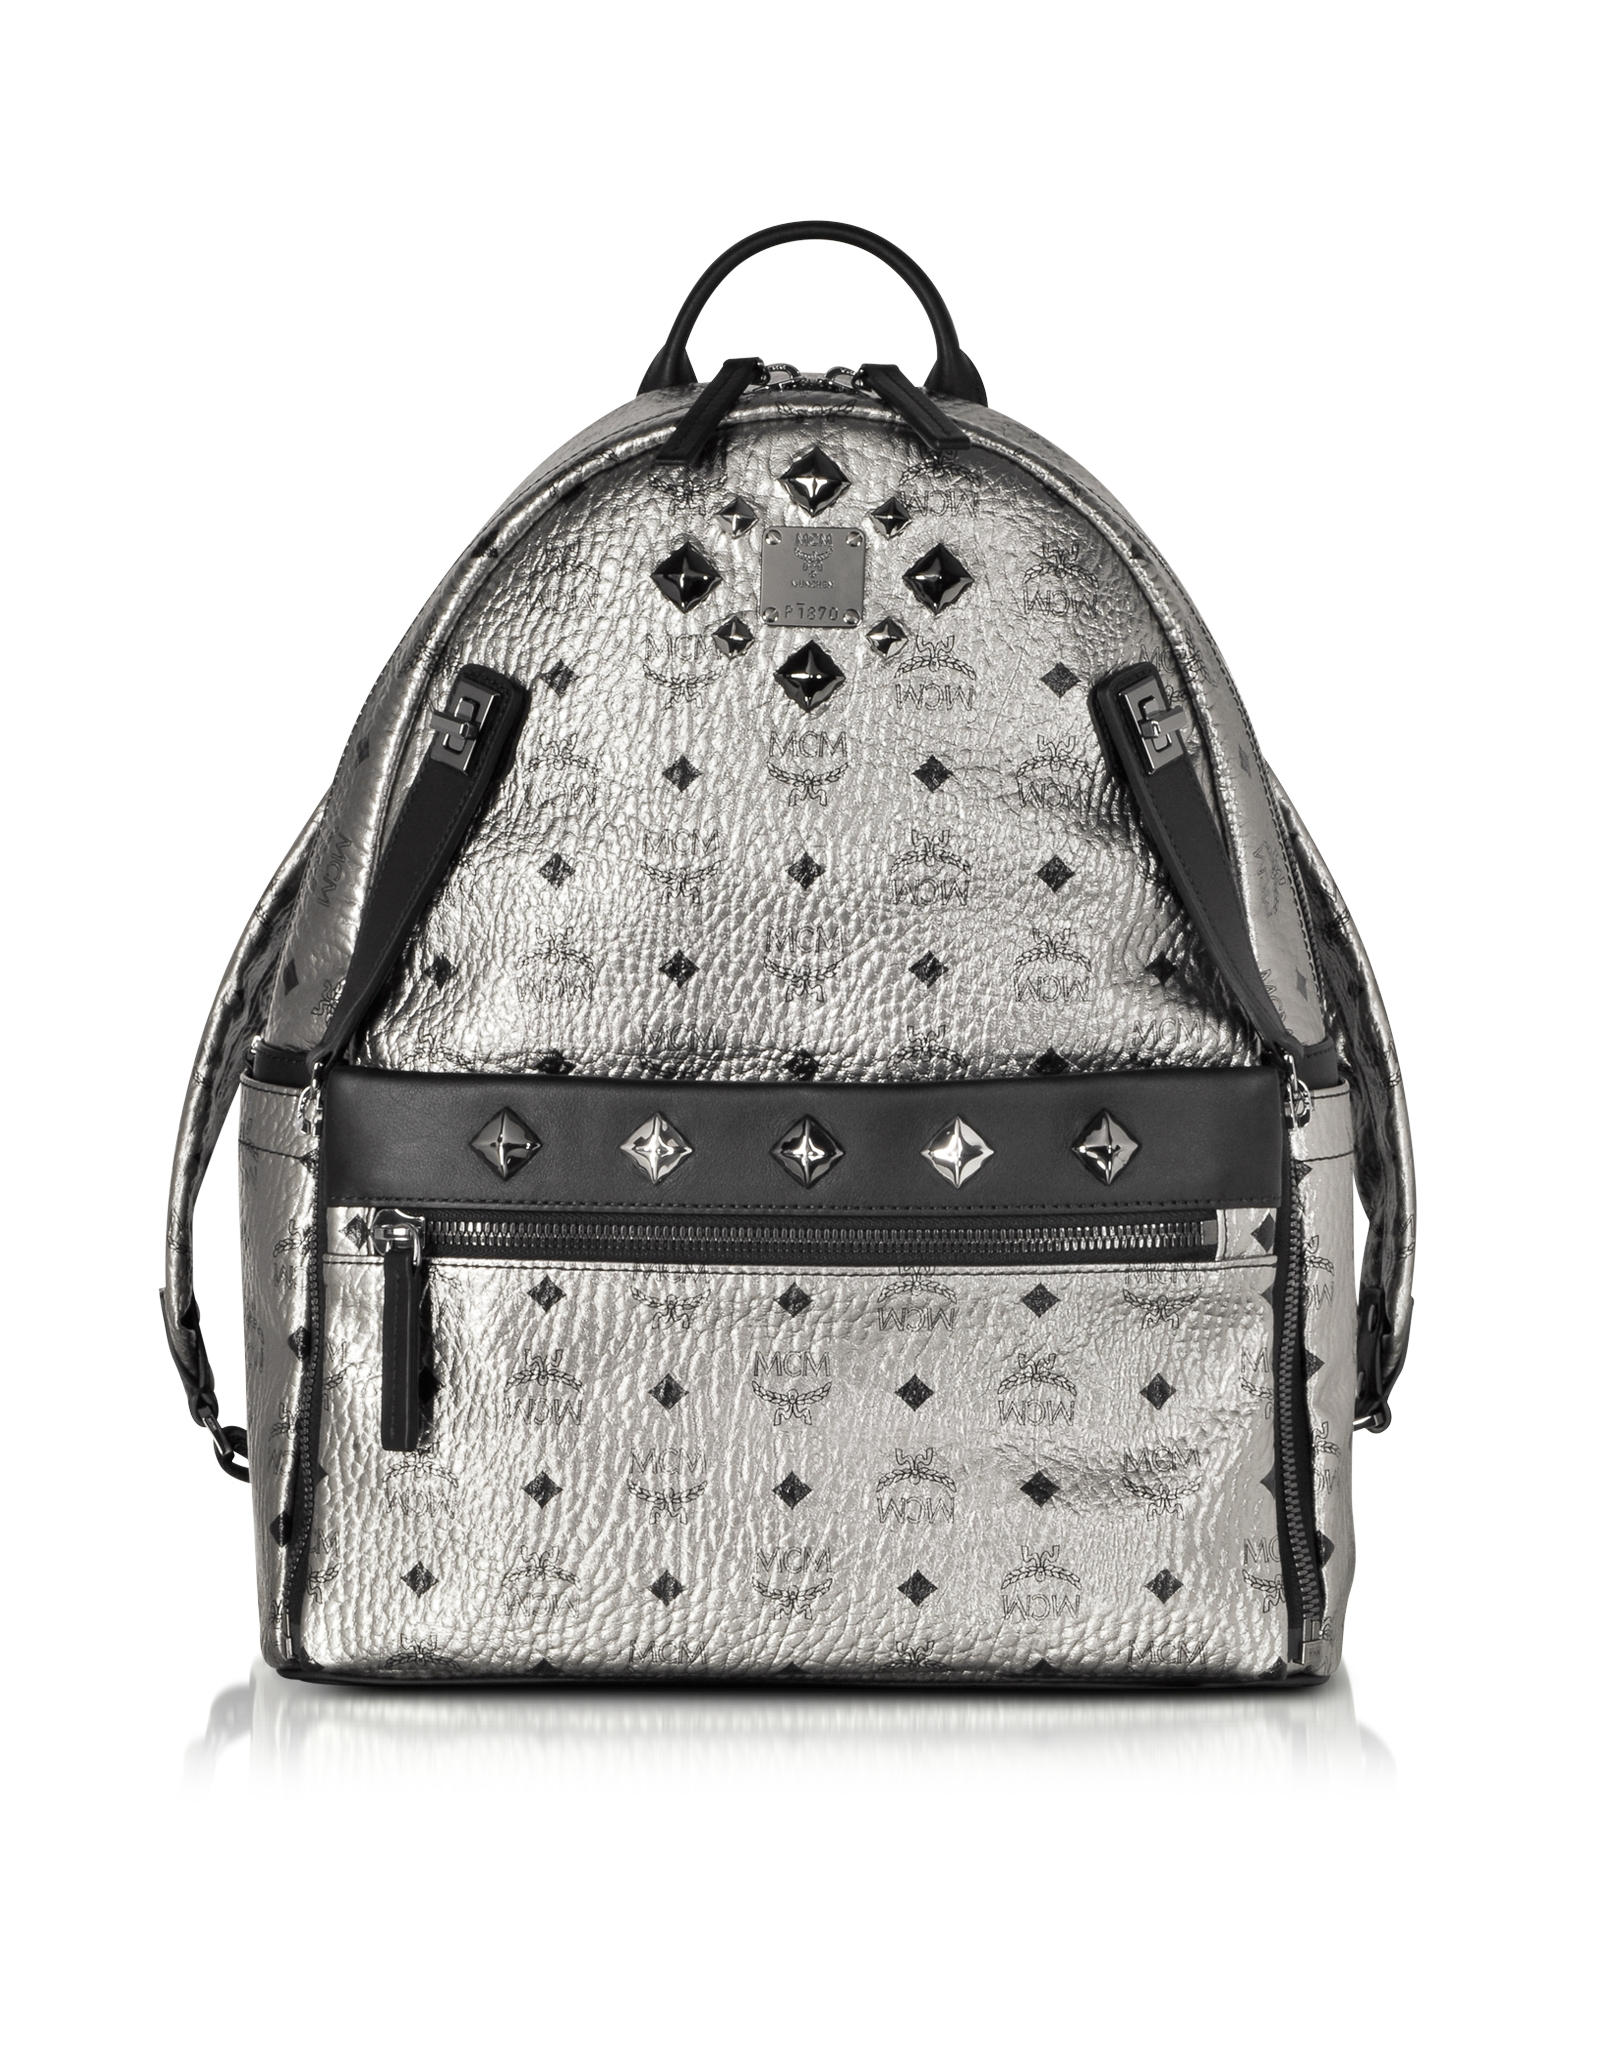 Dual Stark Medium Backpack in Black Visetos MCM bjqhsd